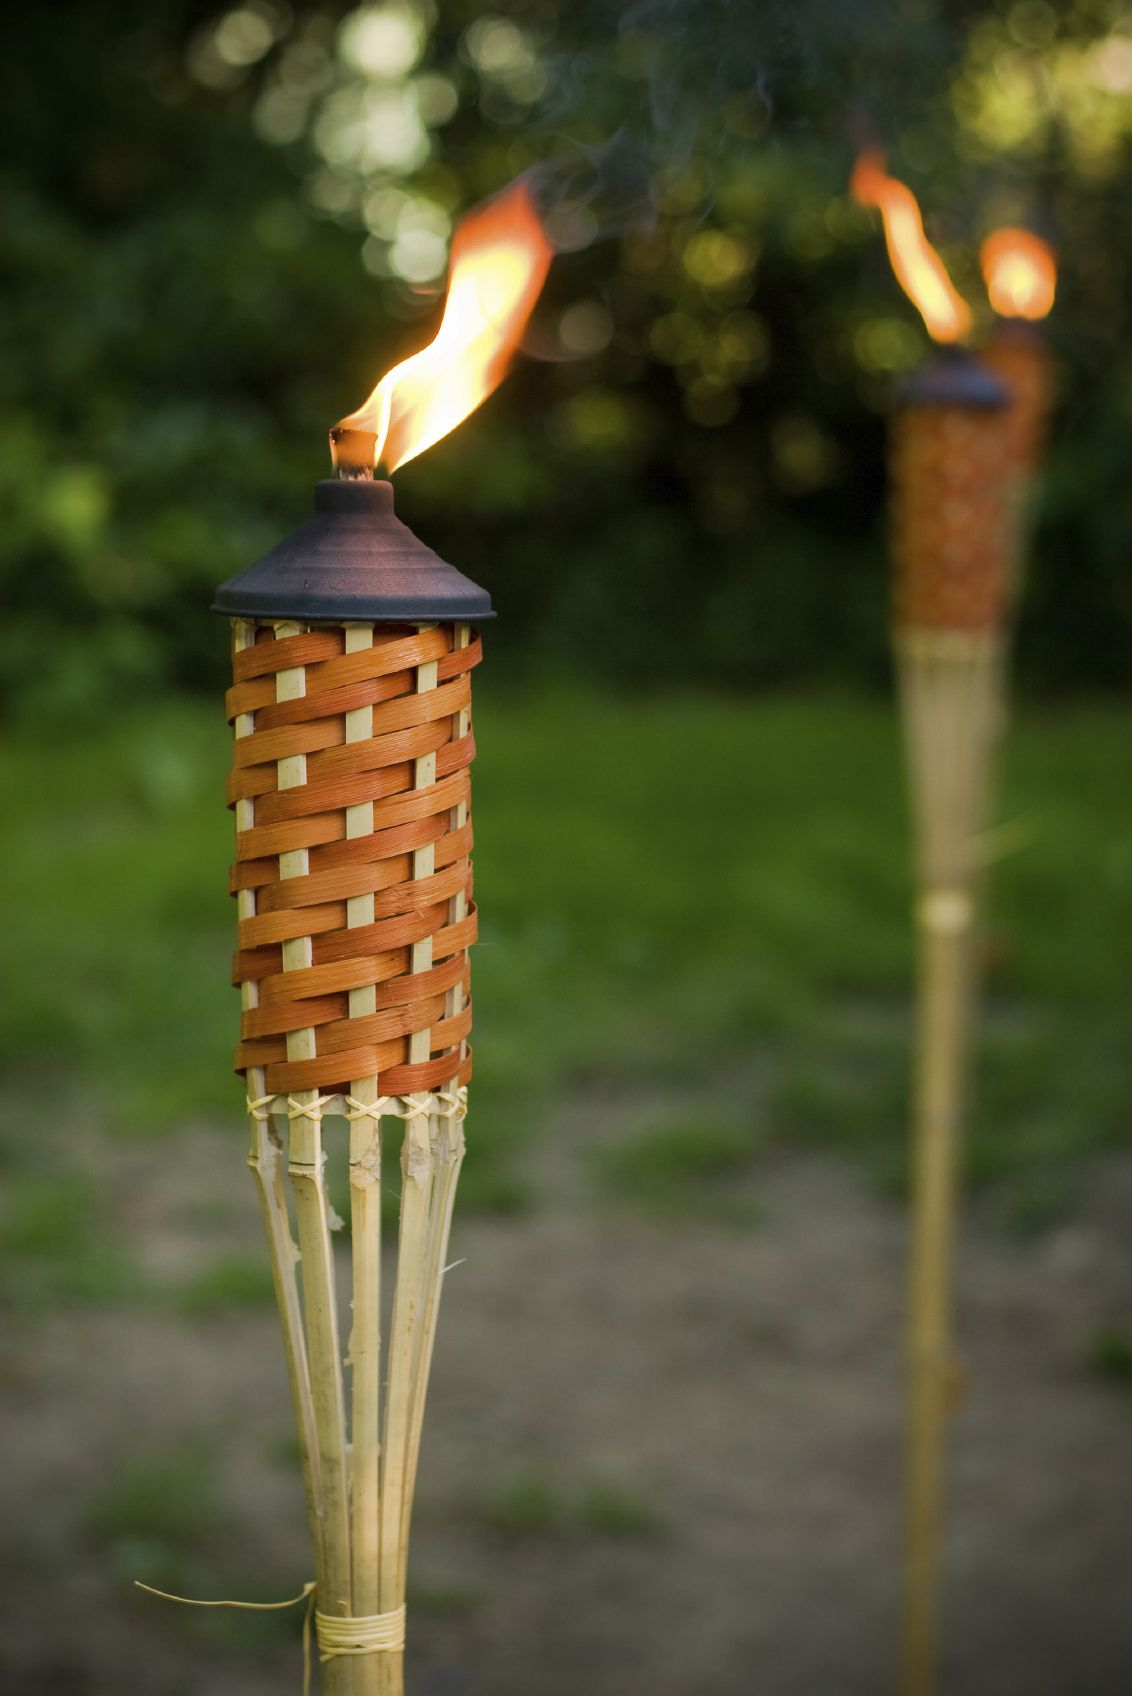 15 backyard tiki torches tiki torches citronella oil